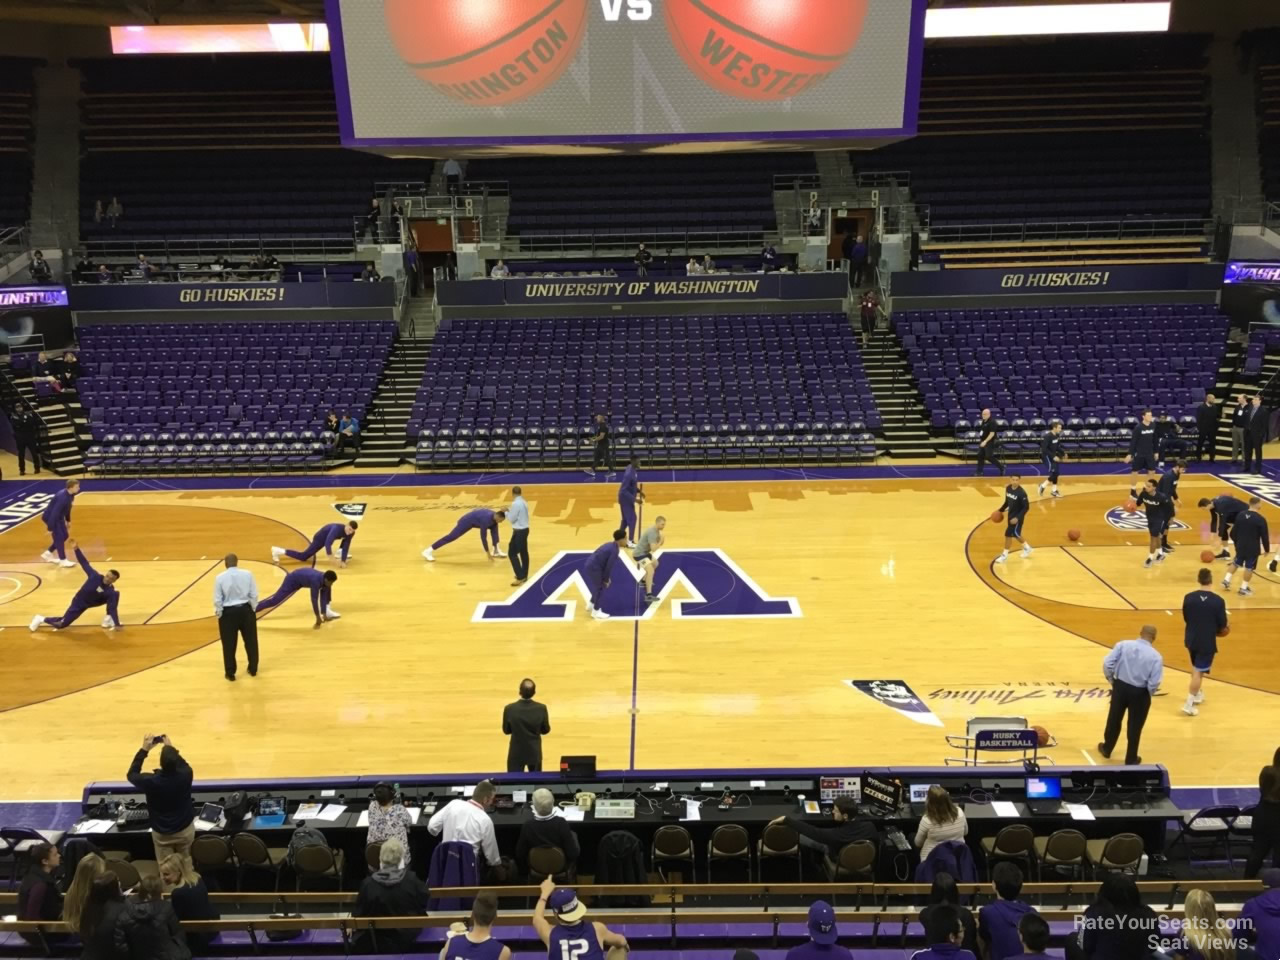 Seat View for Alaska Airlines Arena Section 1, Row 10